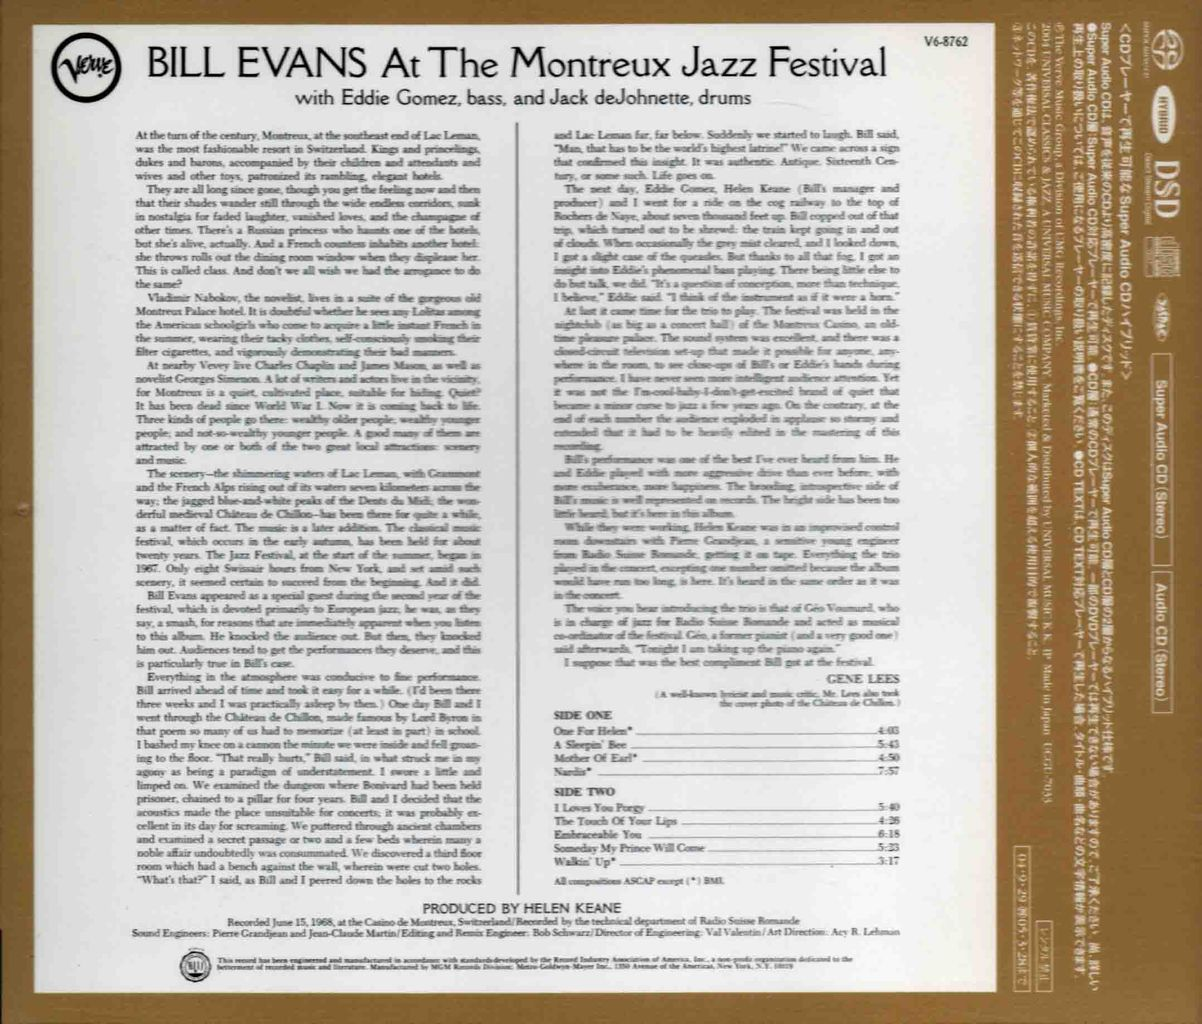 BILL EVANS AT THE MONTREUX JAZZ FESTIVAL-2